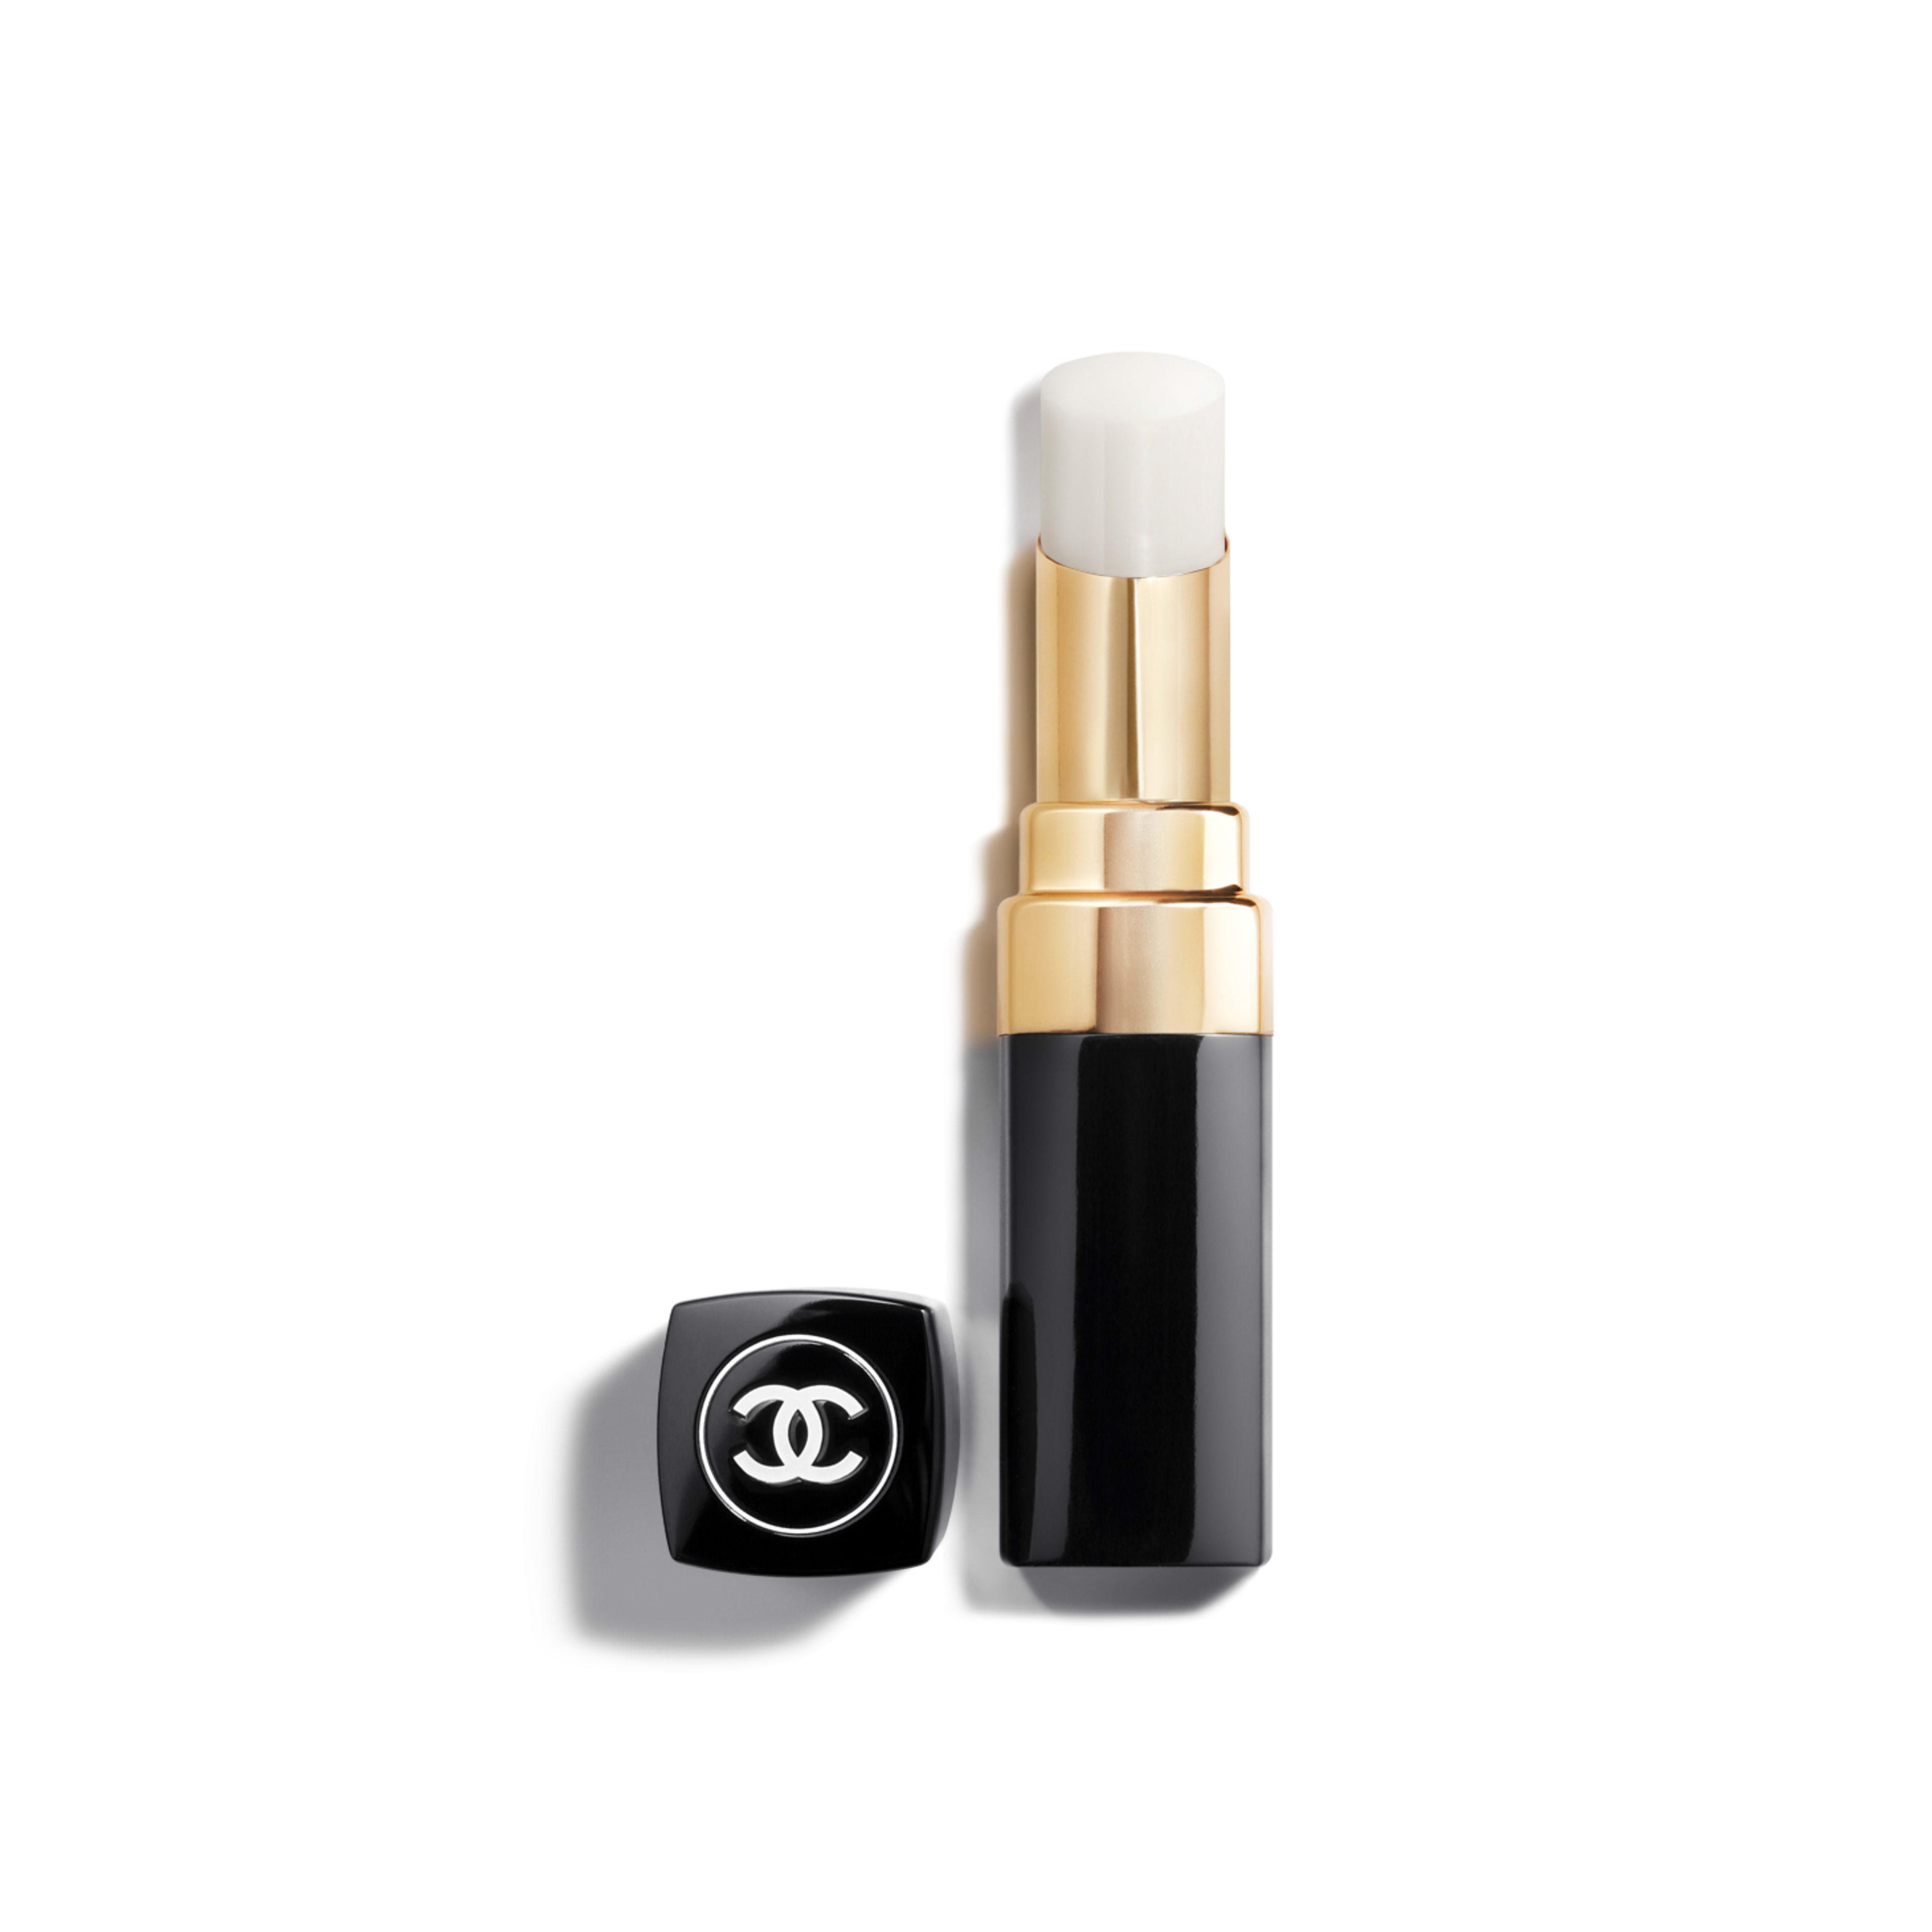 ROUGE COCO BAUME - makeup - 3g - มุมมองปัจจุบัน